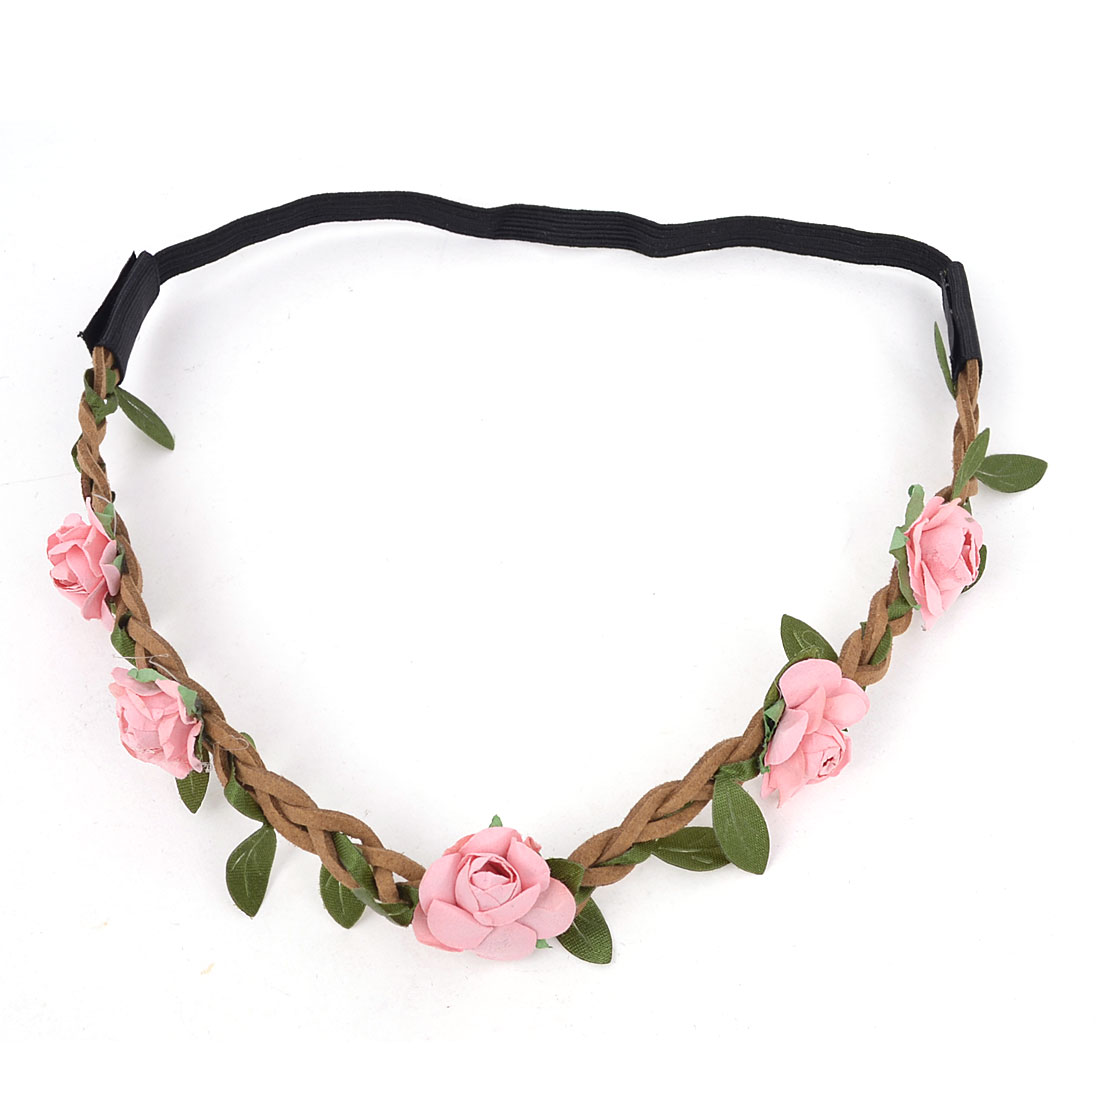 Ladies Hairdressing Pink Flowers Design Braided Strap Elastic Headwear Hair Band